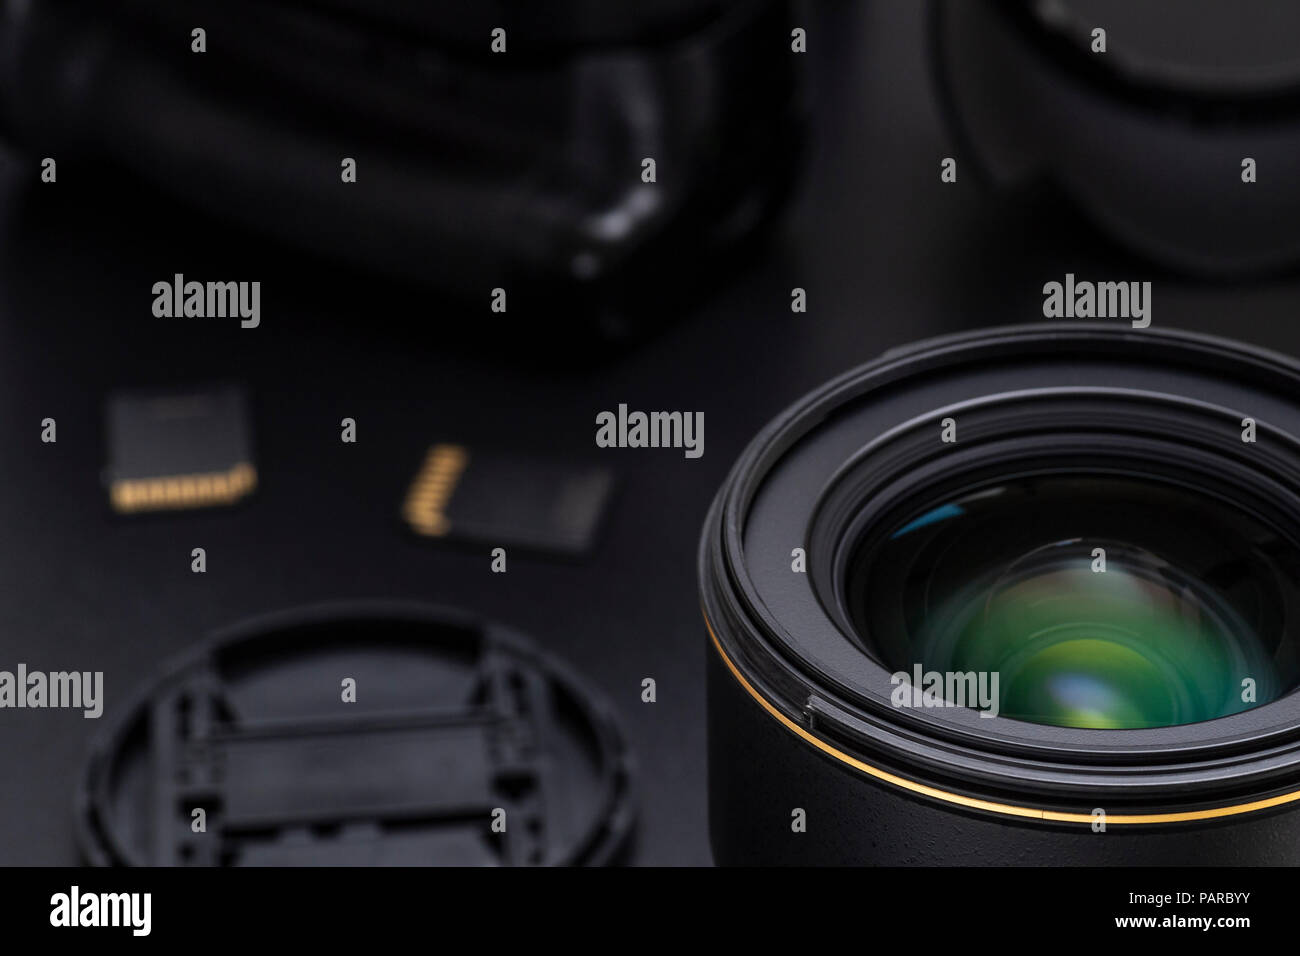 Photo DSLR camera or video lens close-up image with photography equipment on black background - Stock Image